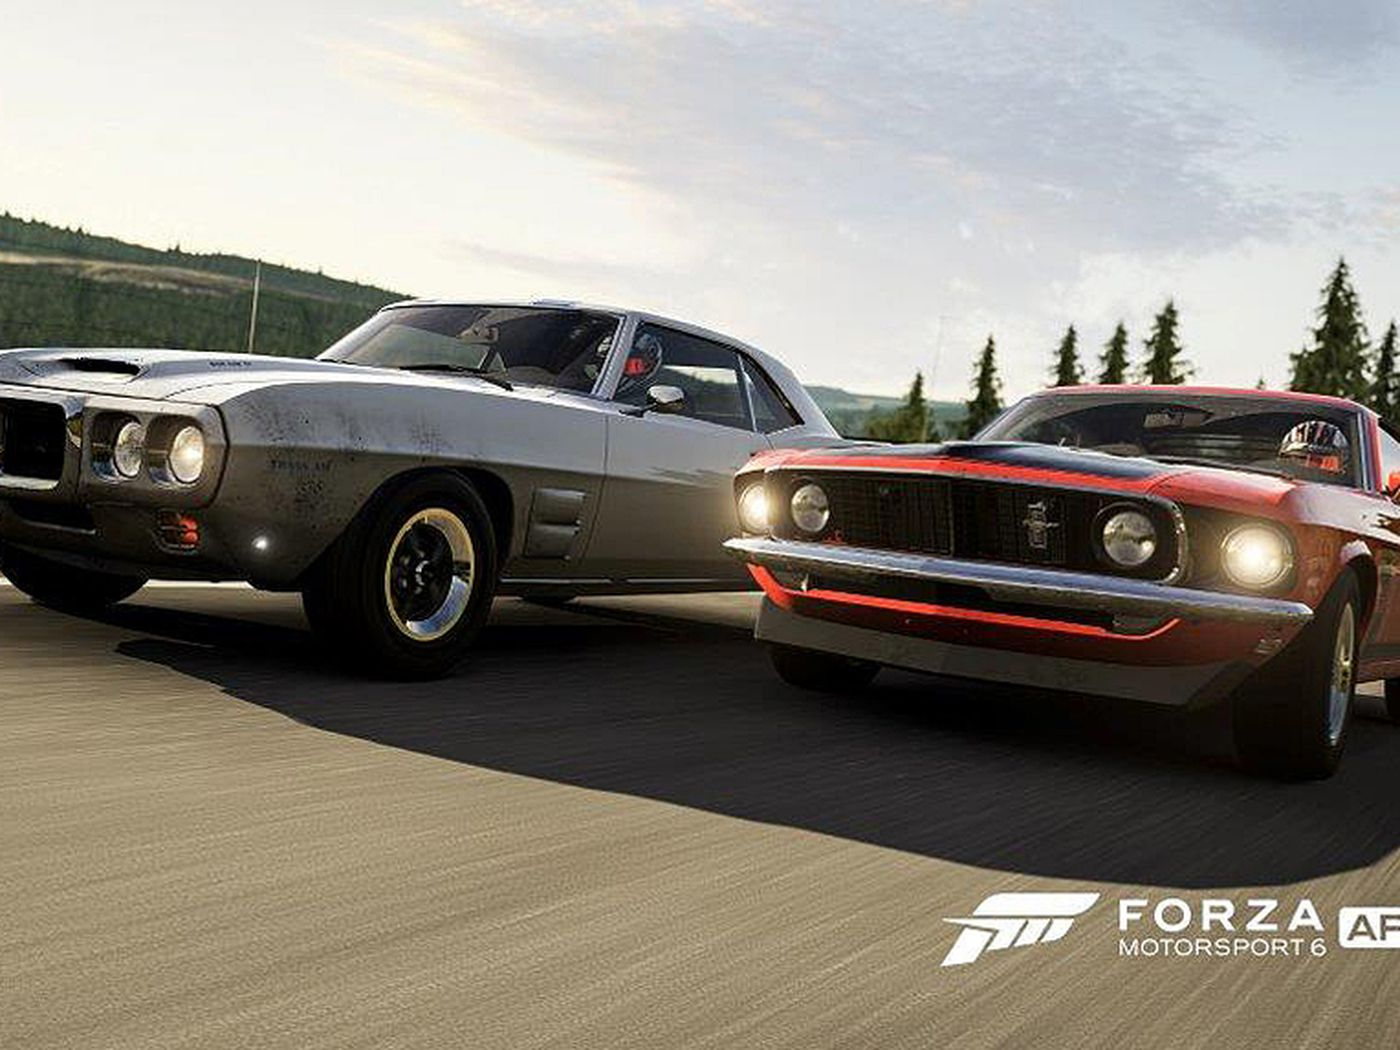 forza motorsport 6 free to play